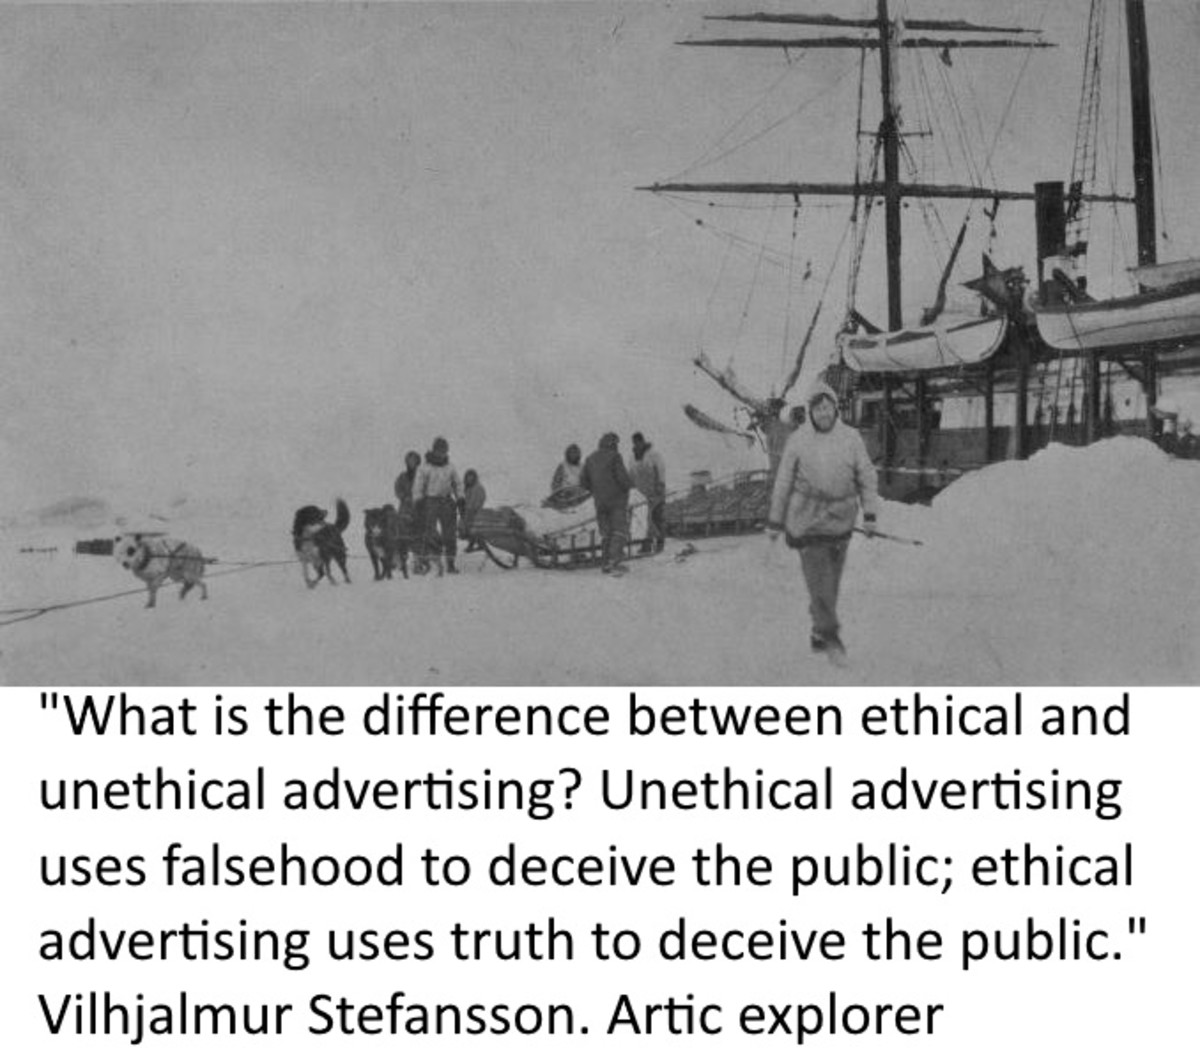 Any intent to influence for the sake of private profit is unethical. Advertising influences through a soft brainwashing process - constant repetition.